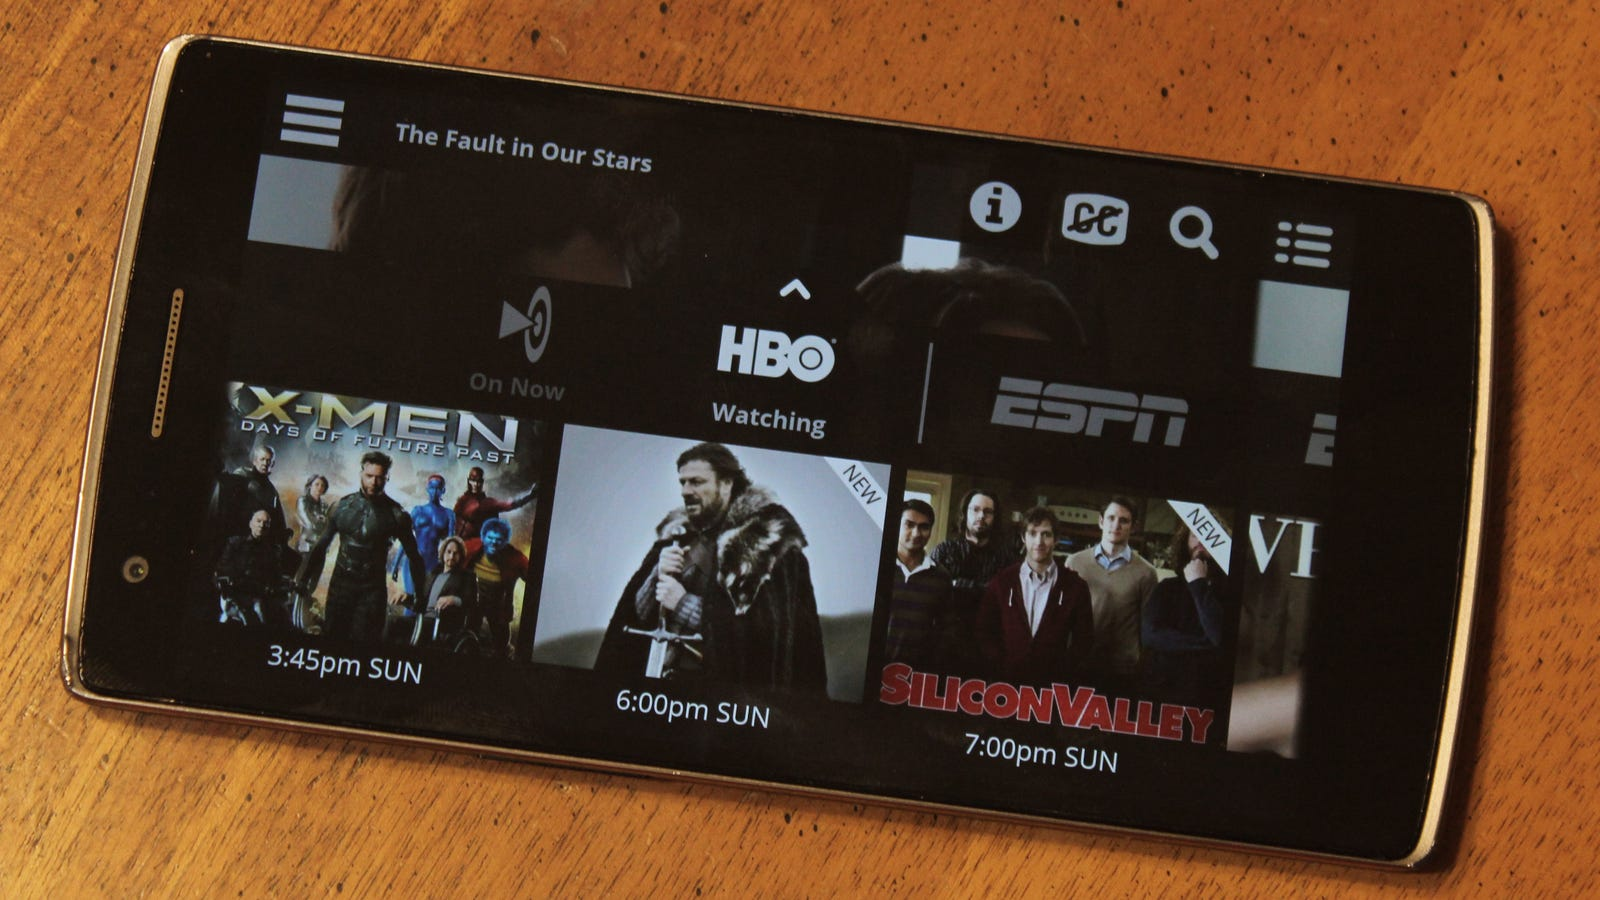 You Can Get Hbo On Sling Tv Now Too